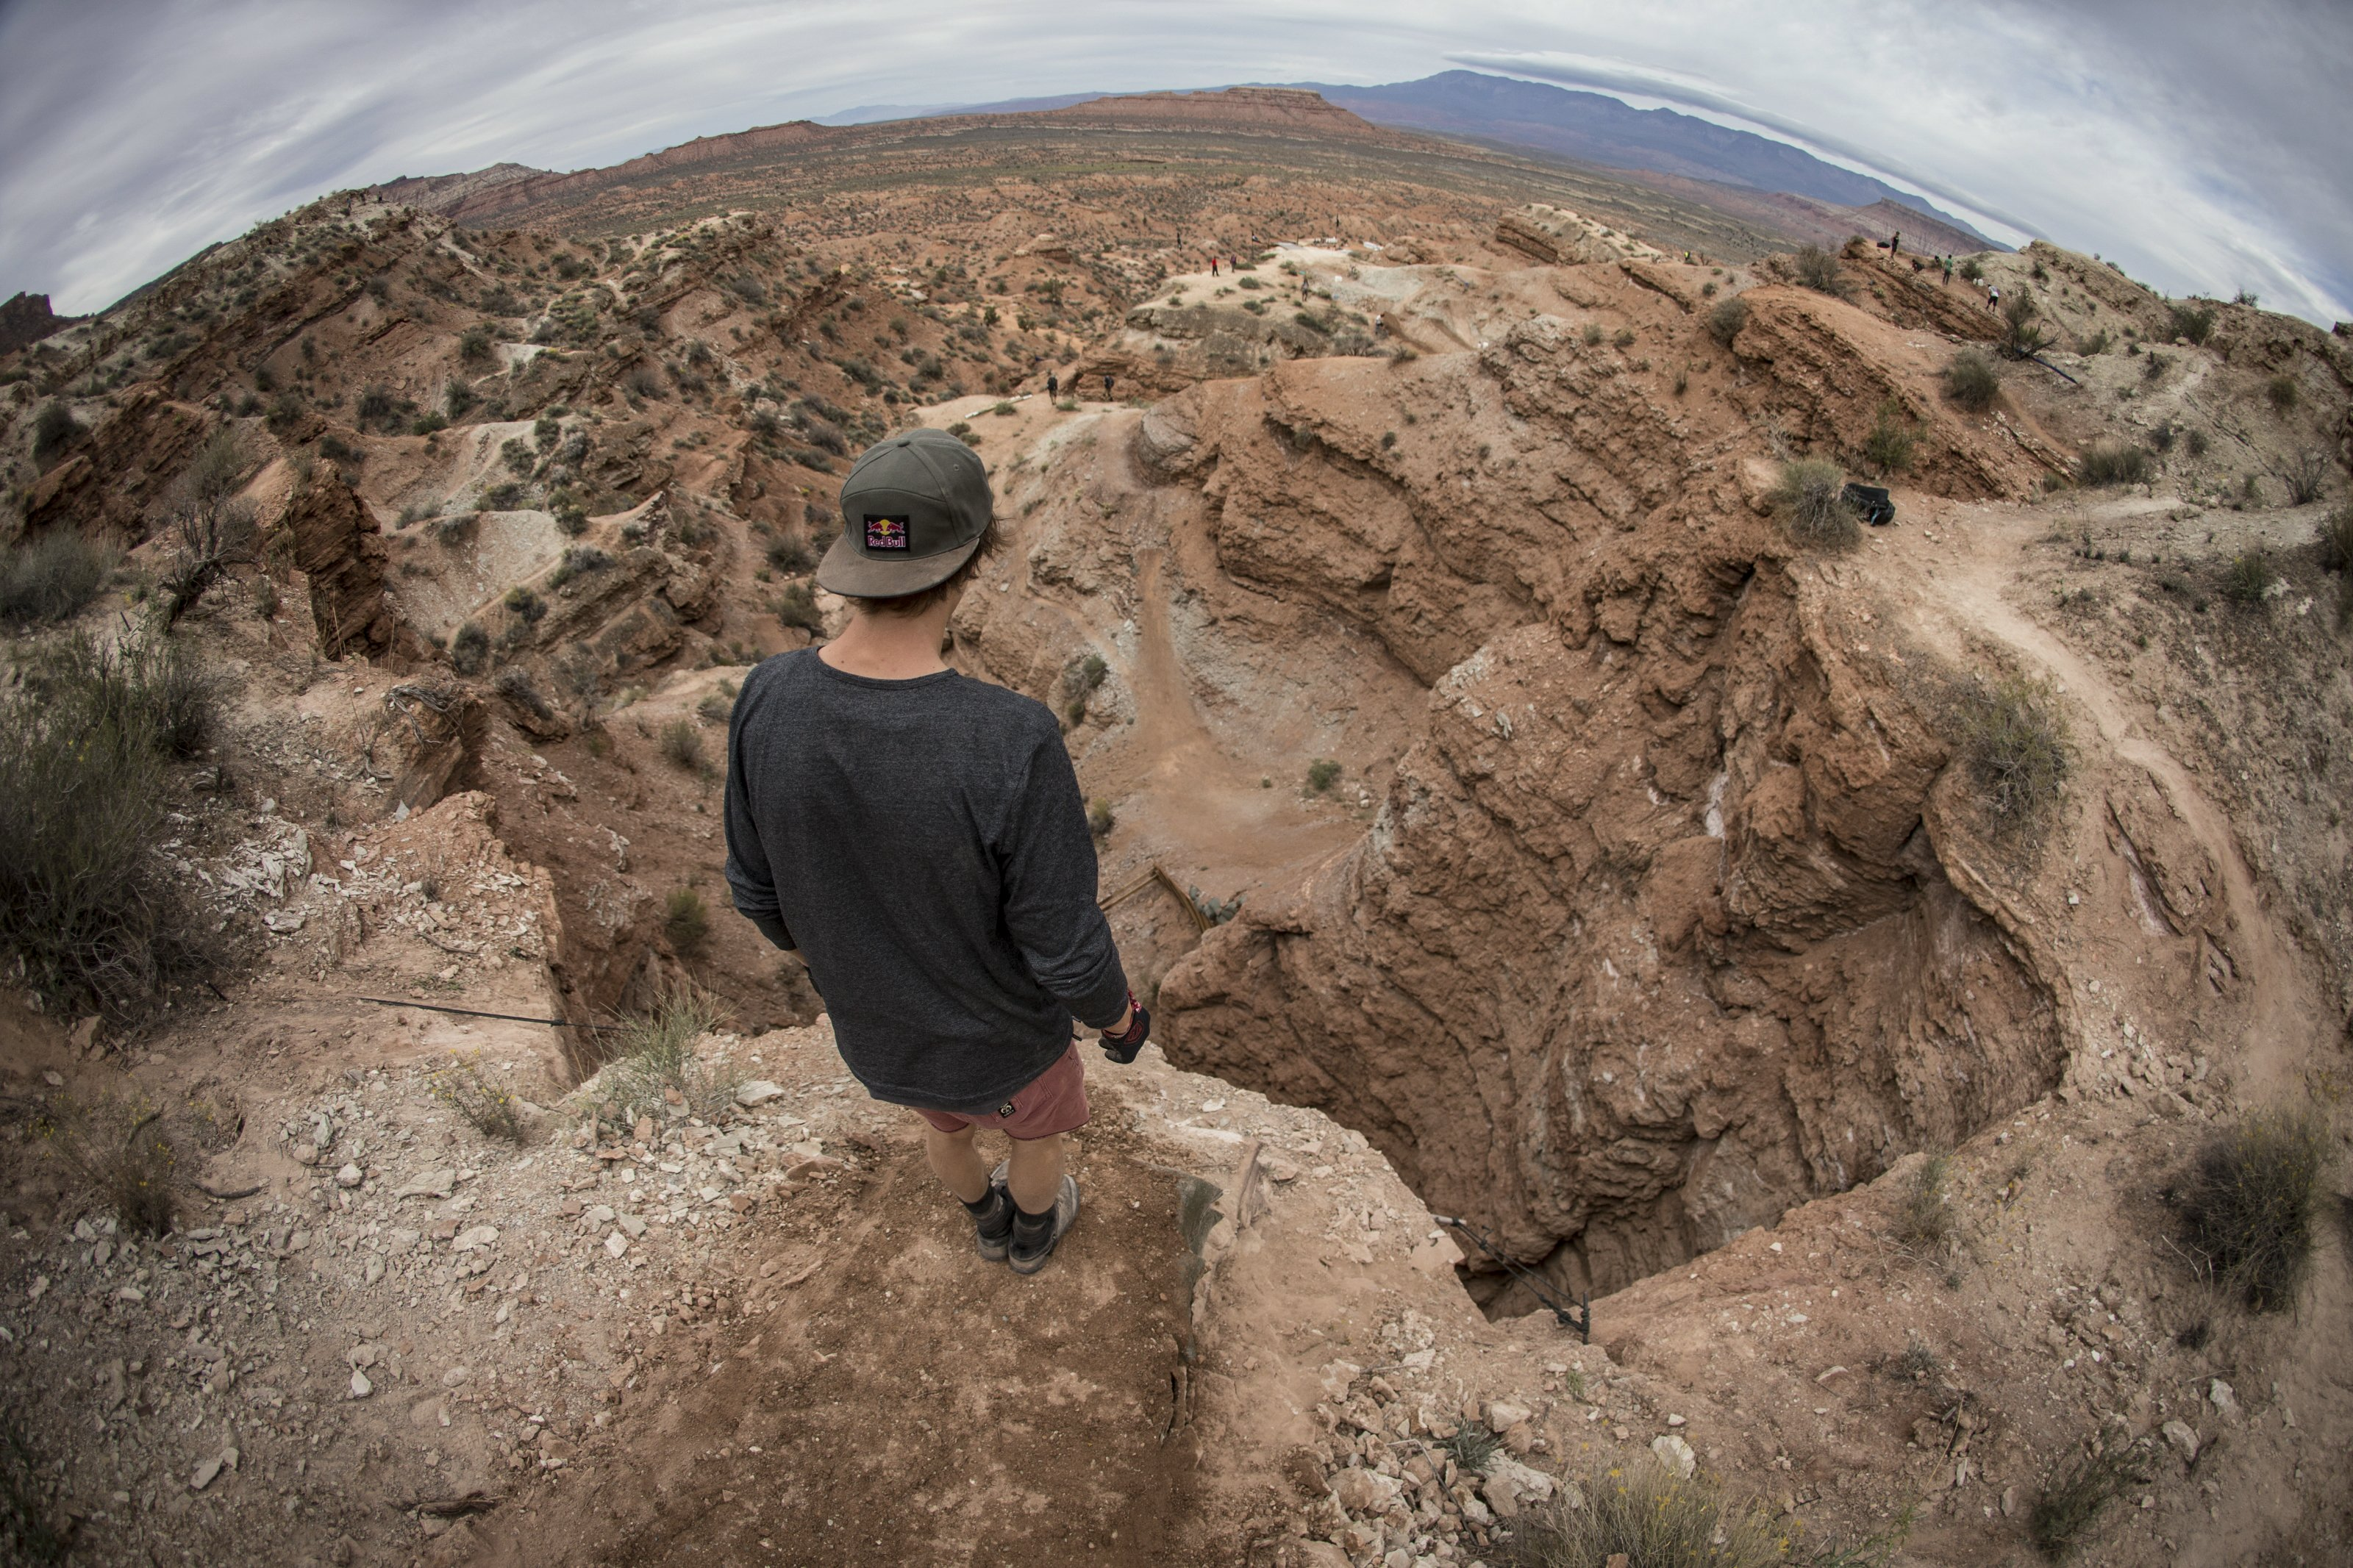 Brandon Semenuk inspects his line during Red Bull Rampage in Virgin, Utah, USA, on 08 October 2013. // Christian Pondella/Red Bull Content Pool // P-20131010-00011 // Usage for editorial use only // Please go to www.redbullcontentpool.com for further information. //